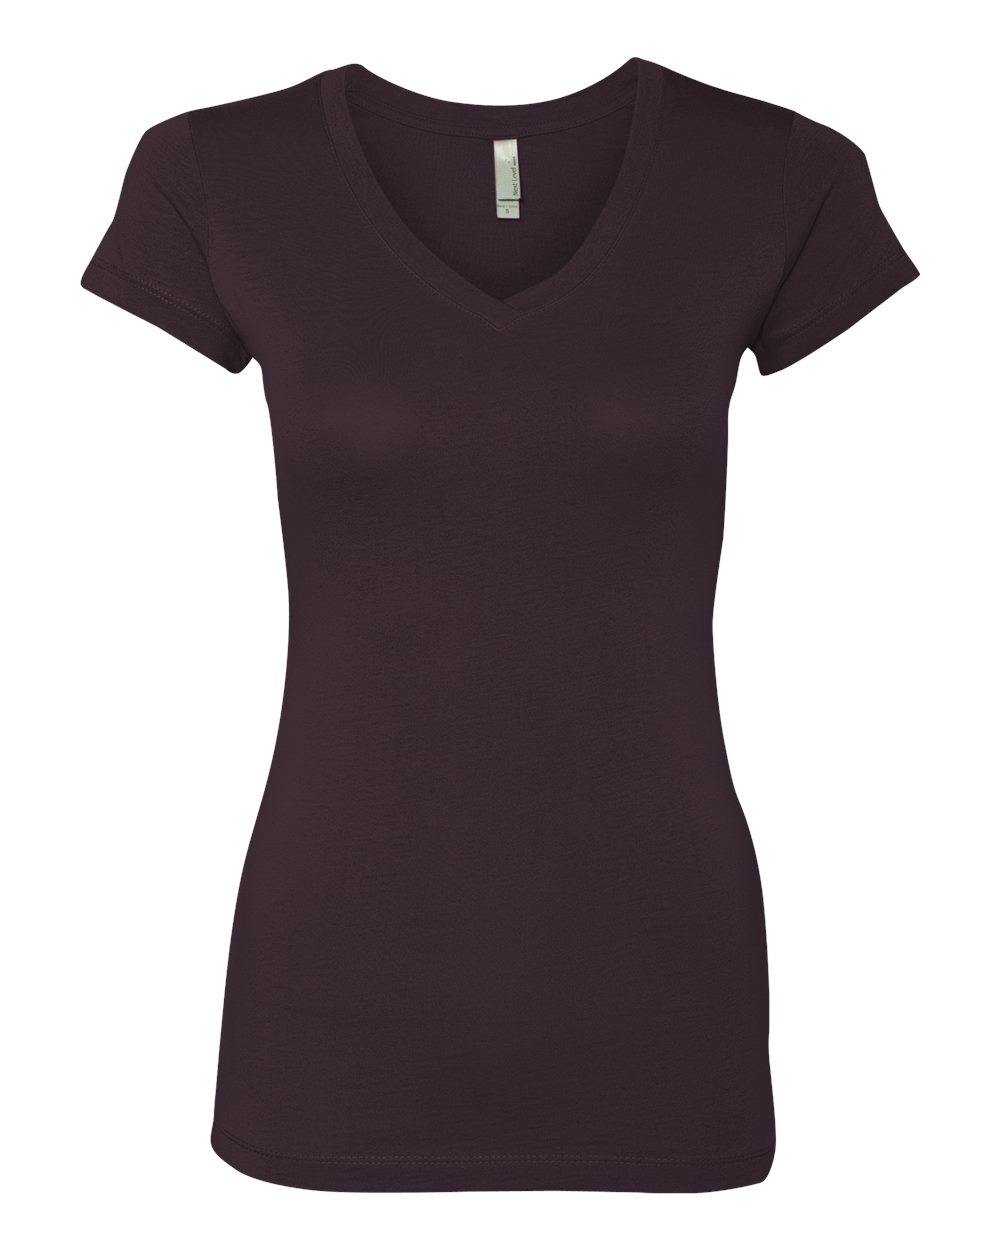 Next_Level_3400L_Plum_Front_High.jpg